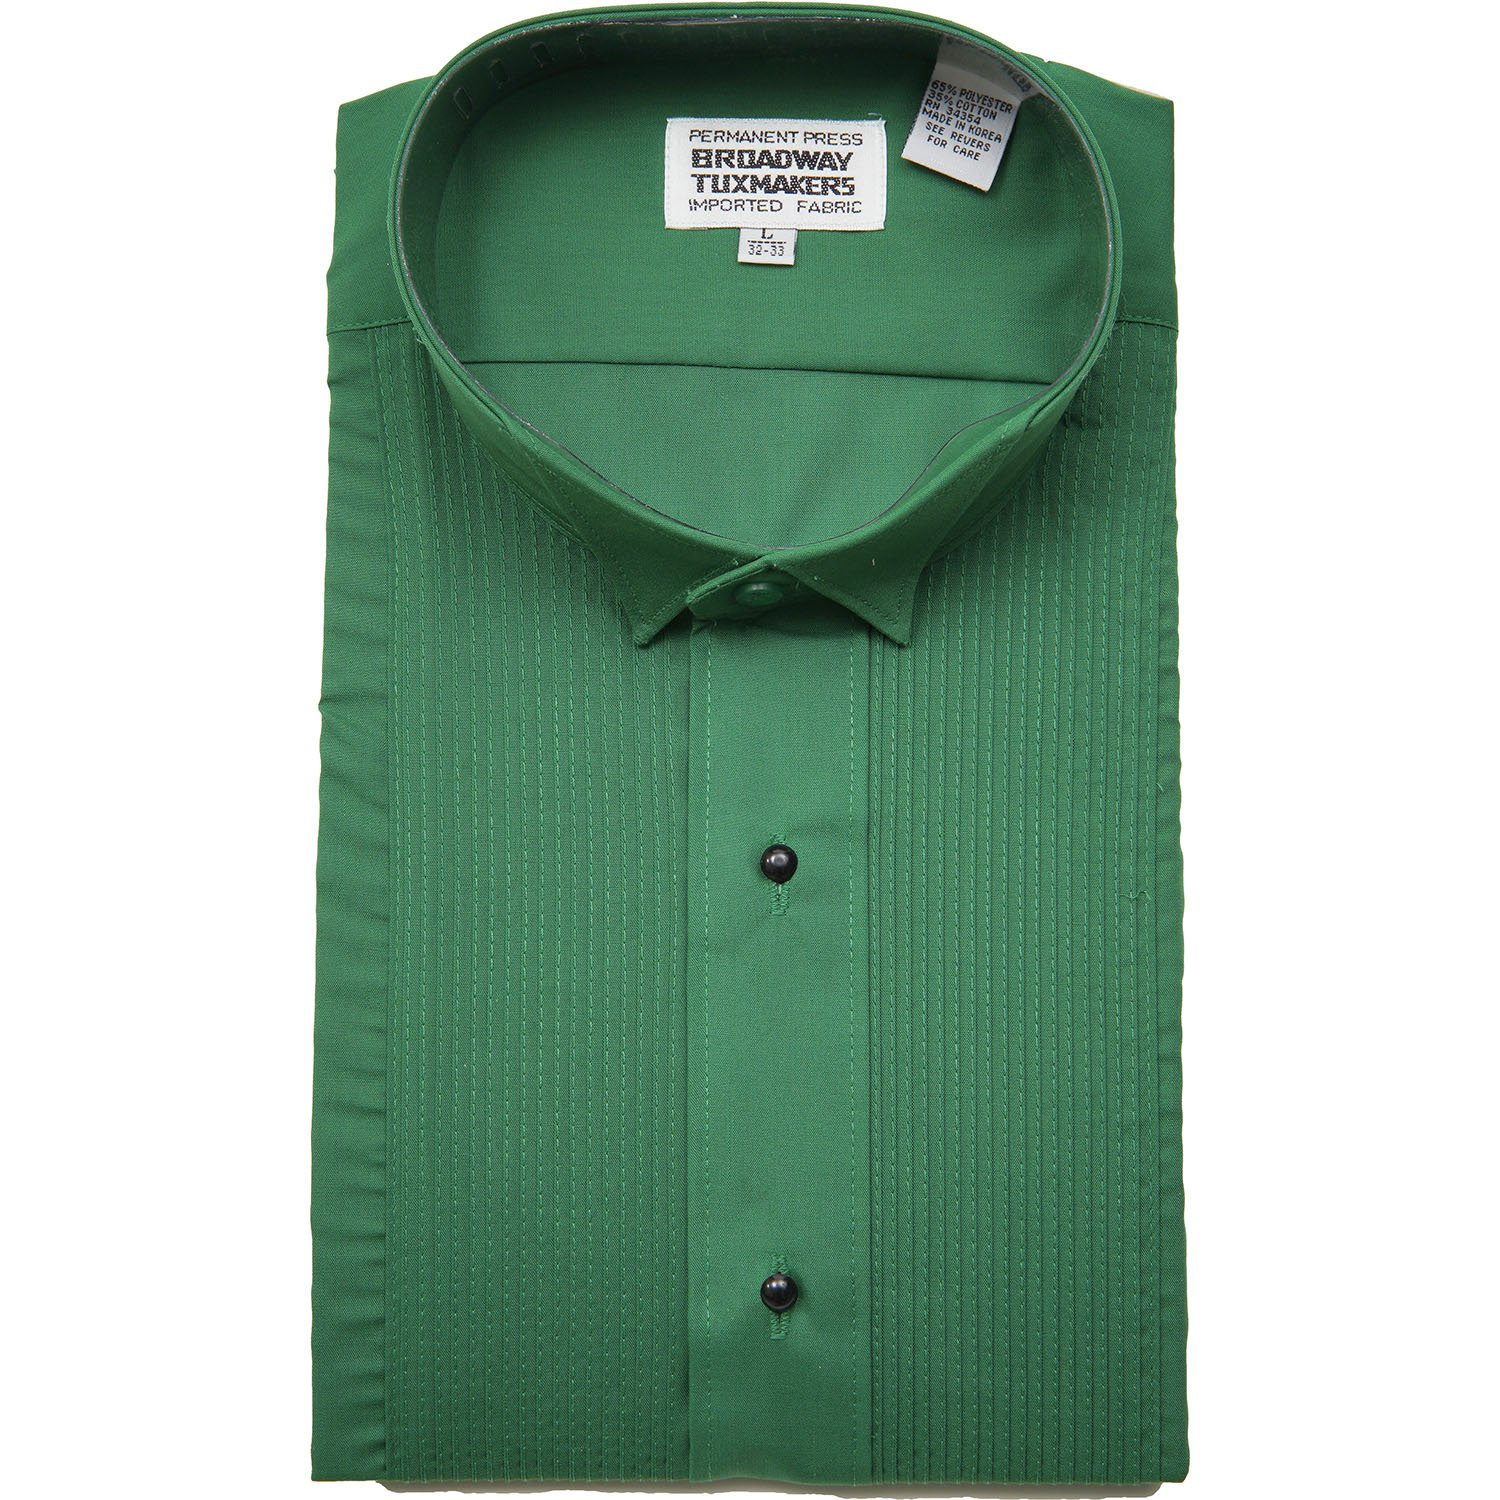 Broadway Tuxmakers Mens Jade Green Tuxedo Shirt 502-jade